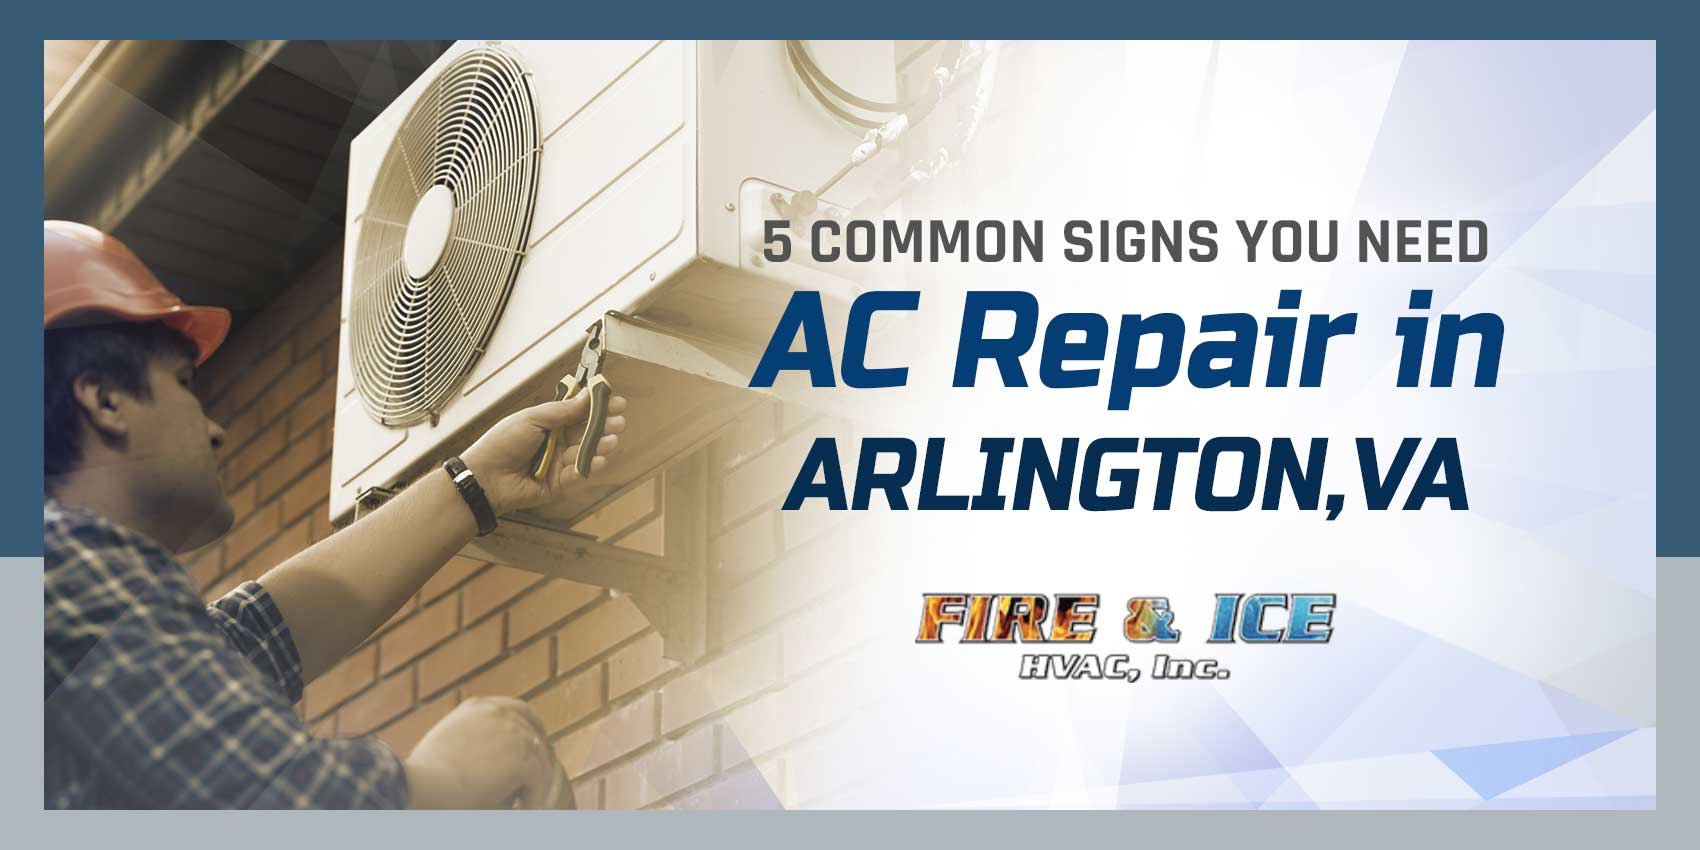 5 Common Signs You Need AC Repair in Arlington, VA